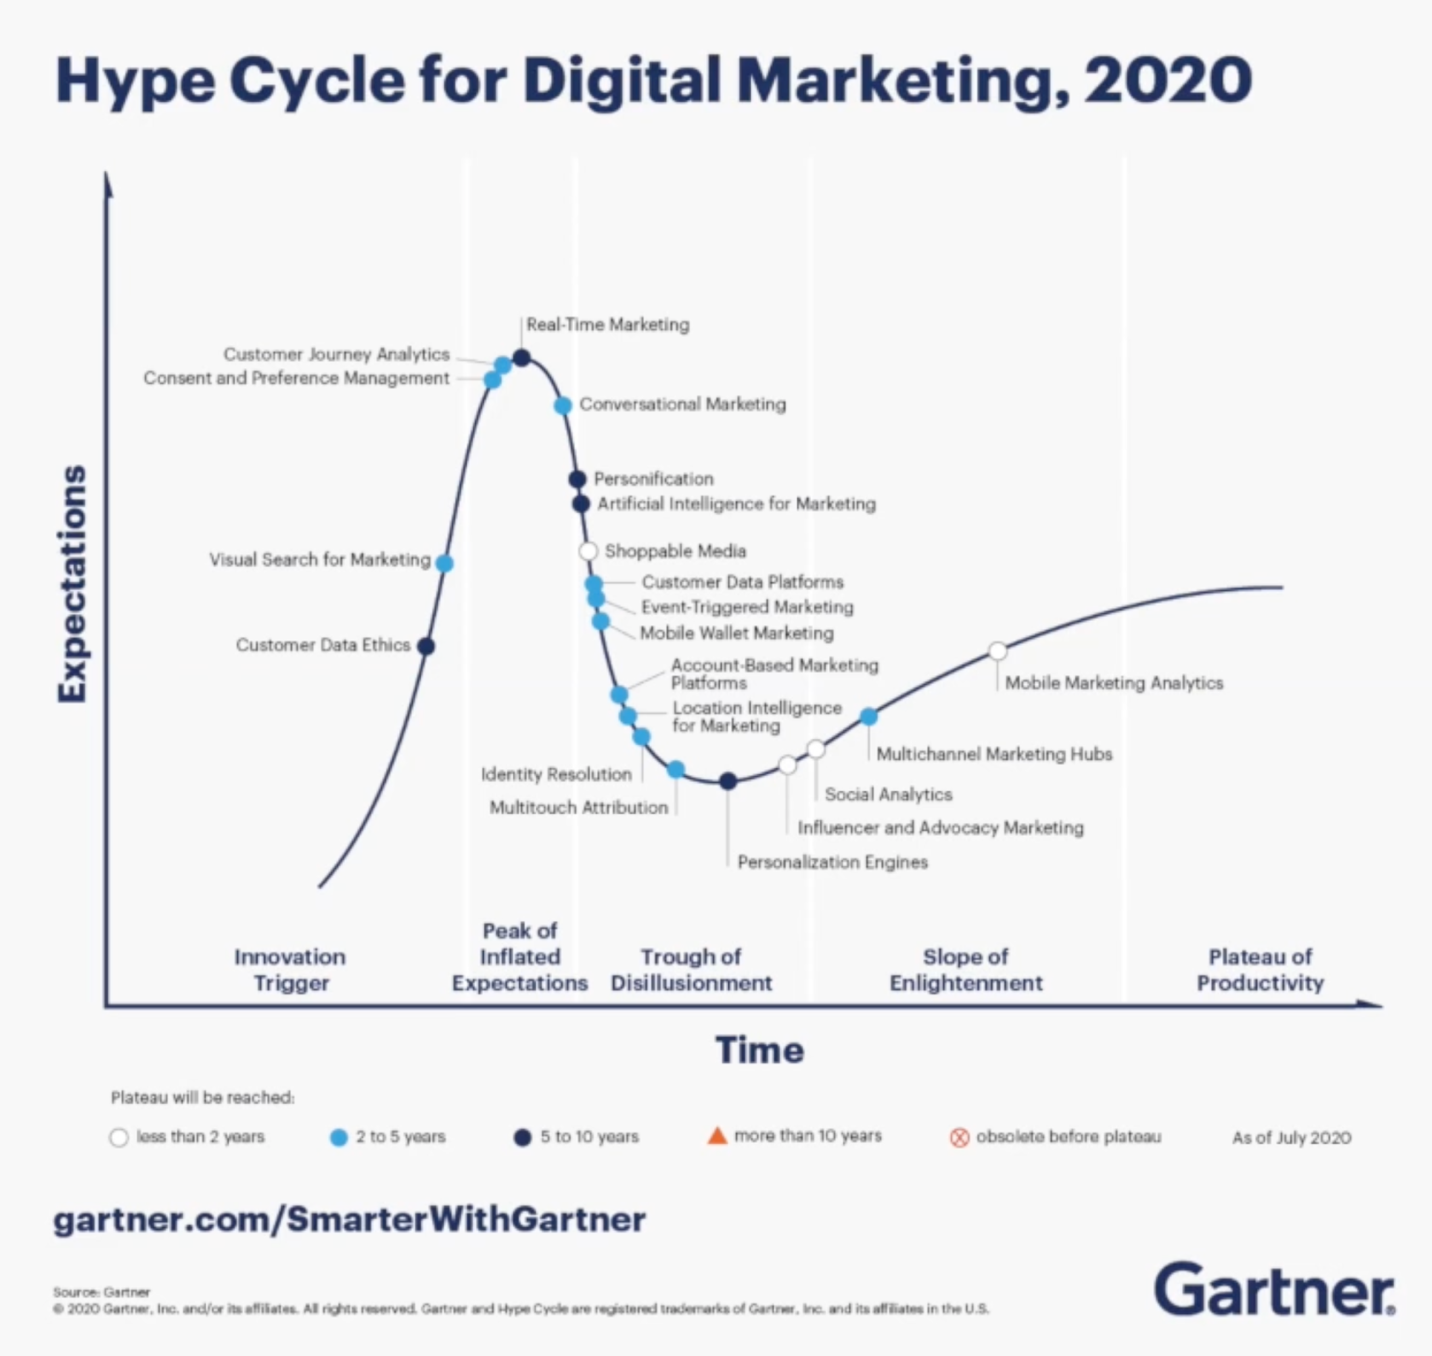 hype cycle for digital marketing